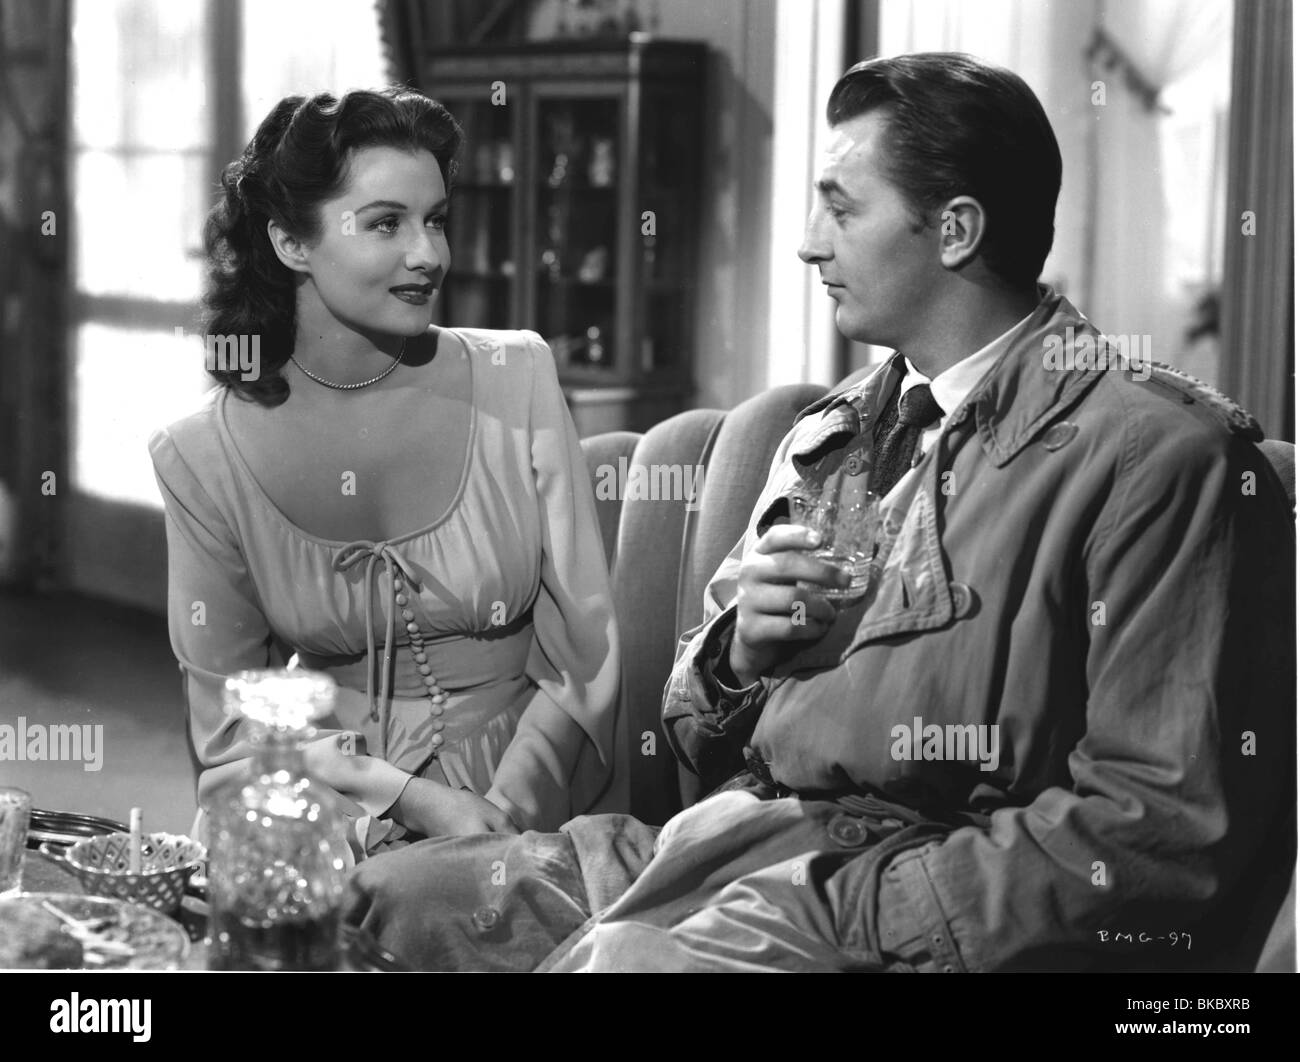 OUT OF THE PAST (1947) BUILD MY GALLOWS HIGH (ALT) RHONDA FLEMING, ROBERT MITCHUM OOTP 004P - Stock Image